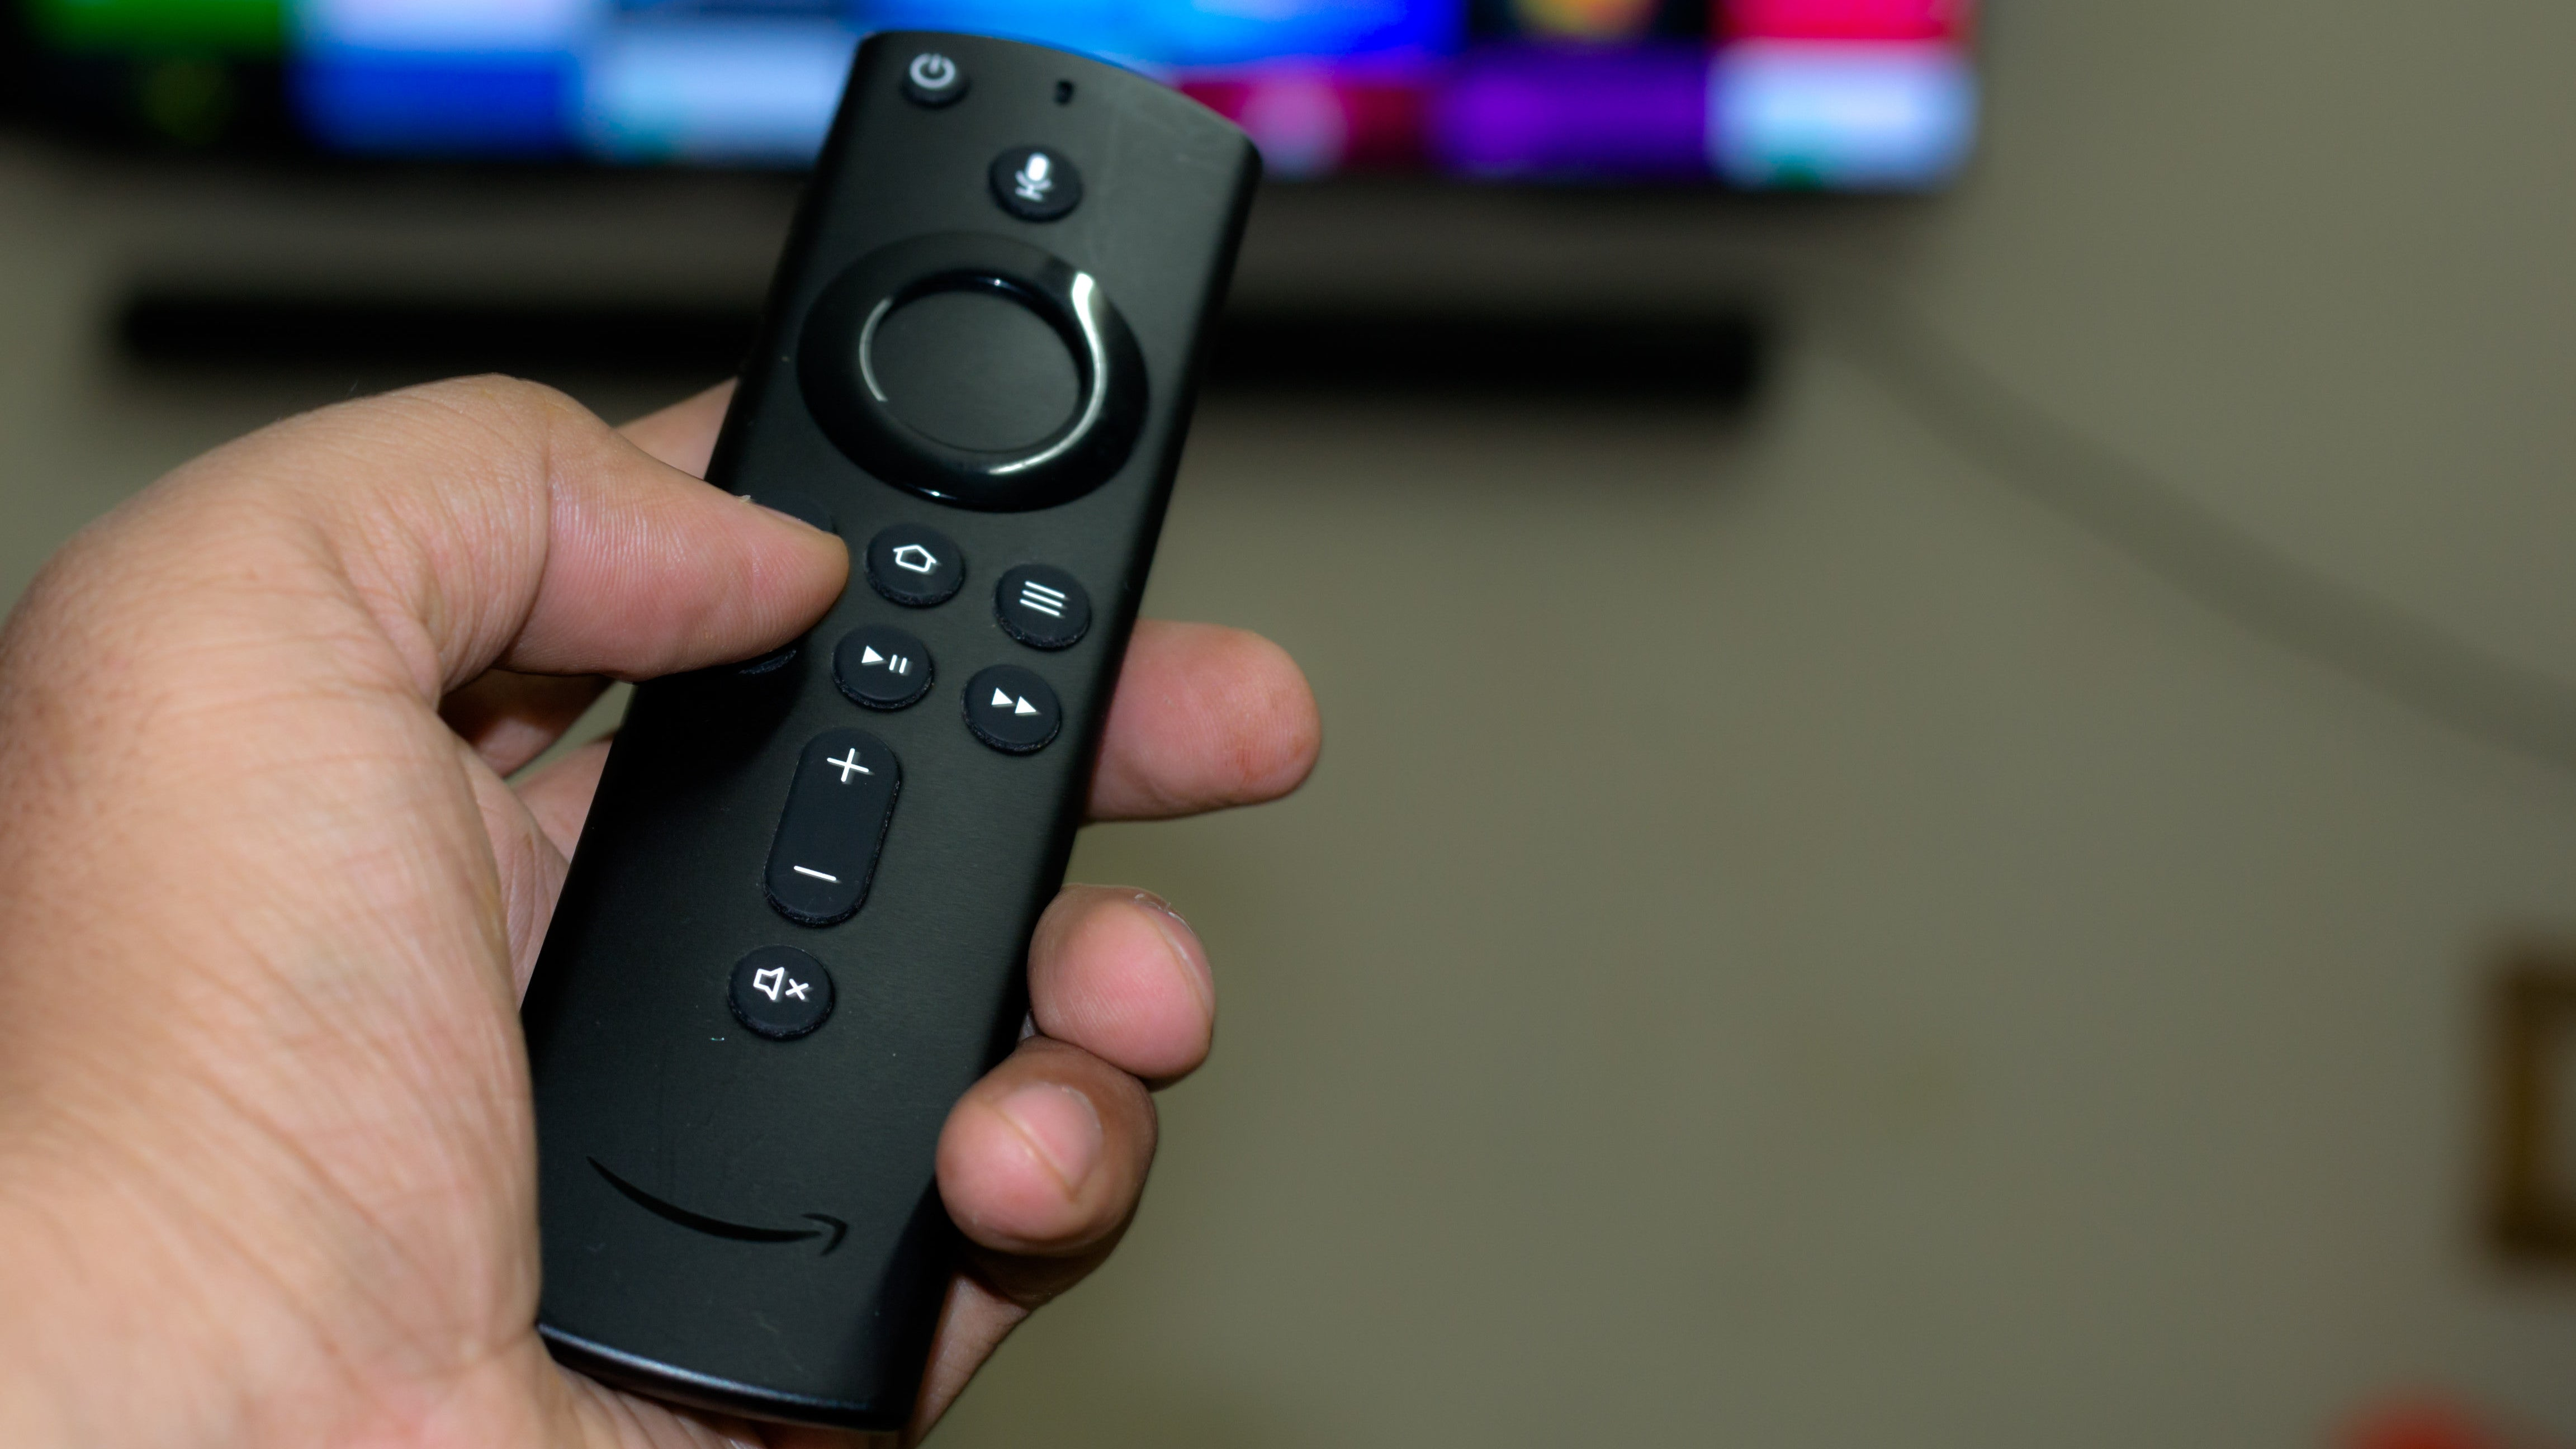 What To Do If Netflix Won't Connect On Your TV